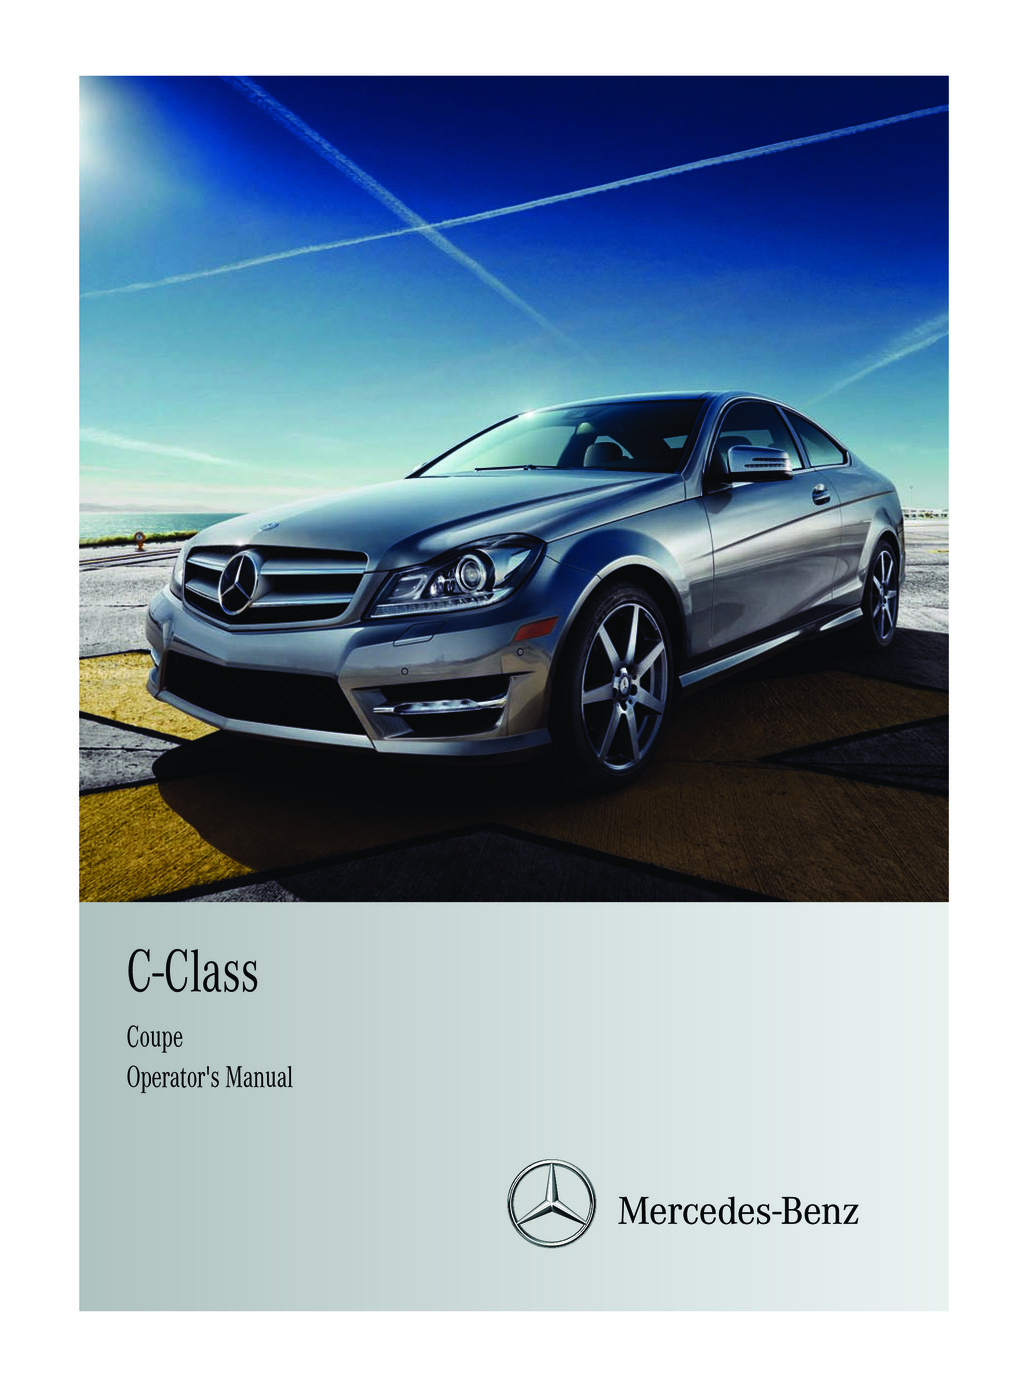 2011 Mercedes-Benz C Class Coupe owners manual